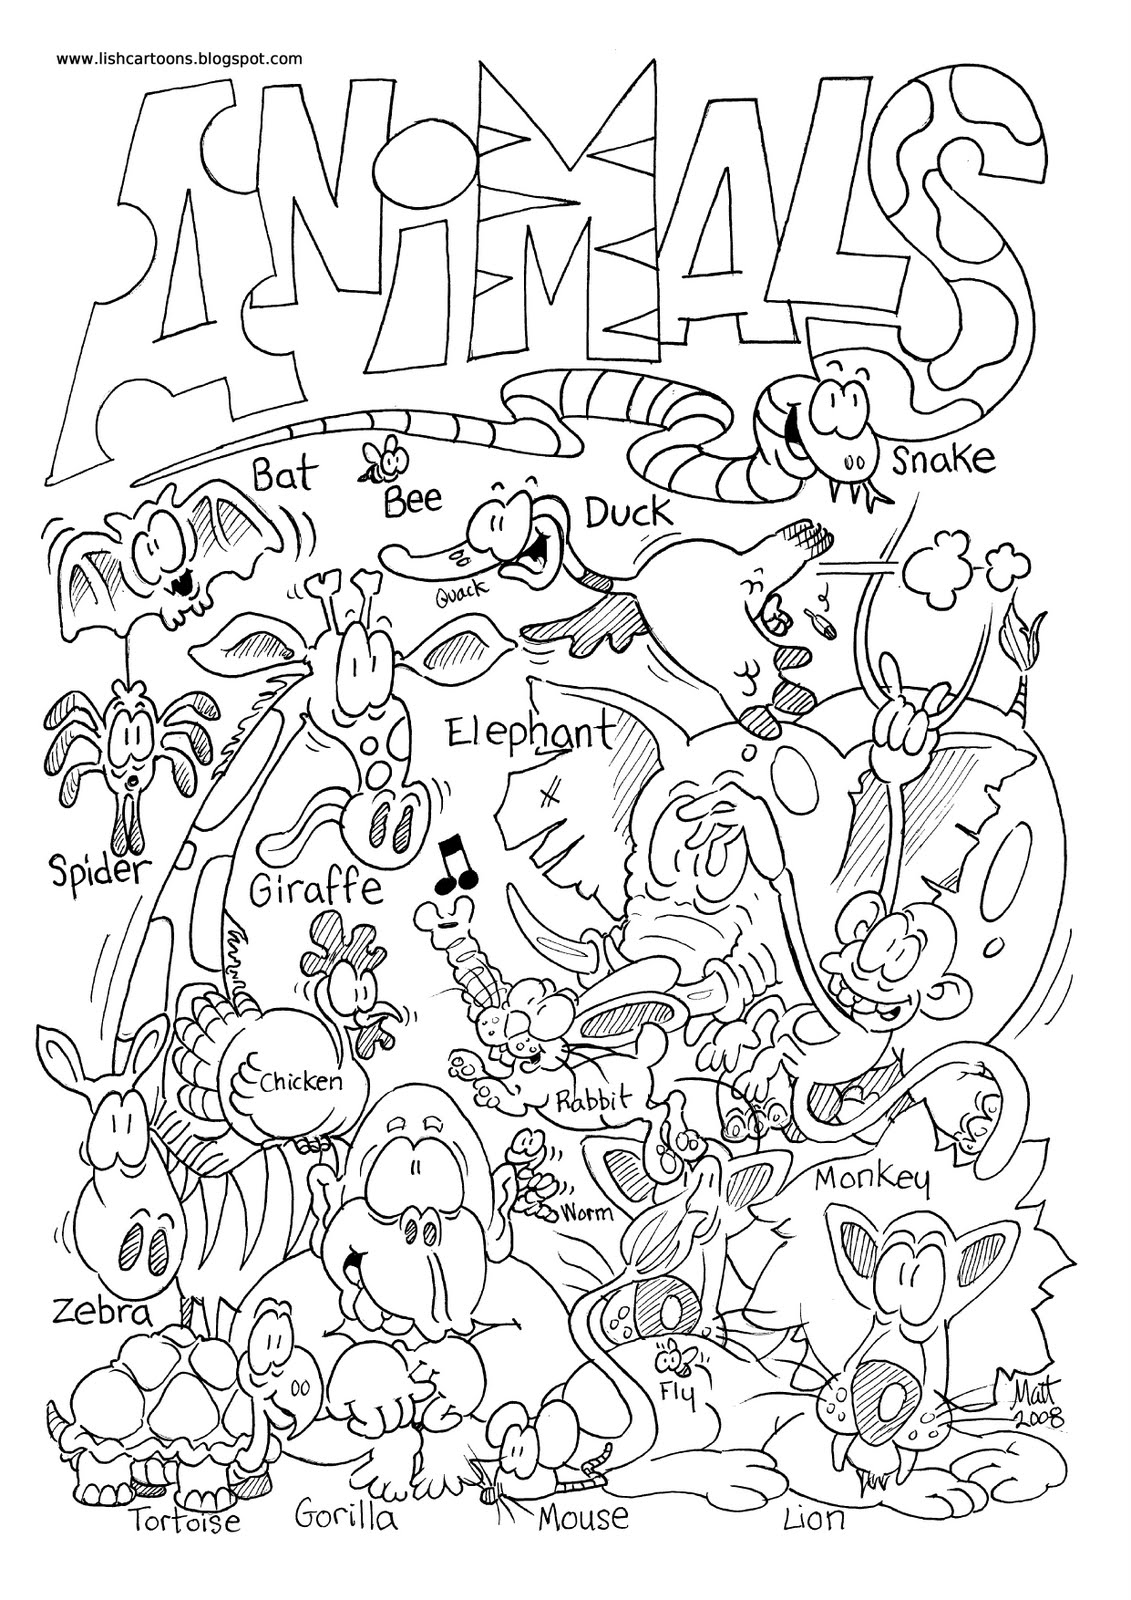 zoo map coloring page new 111 zoo animals worksheet printable zoo worksheet coloring map zoo page